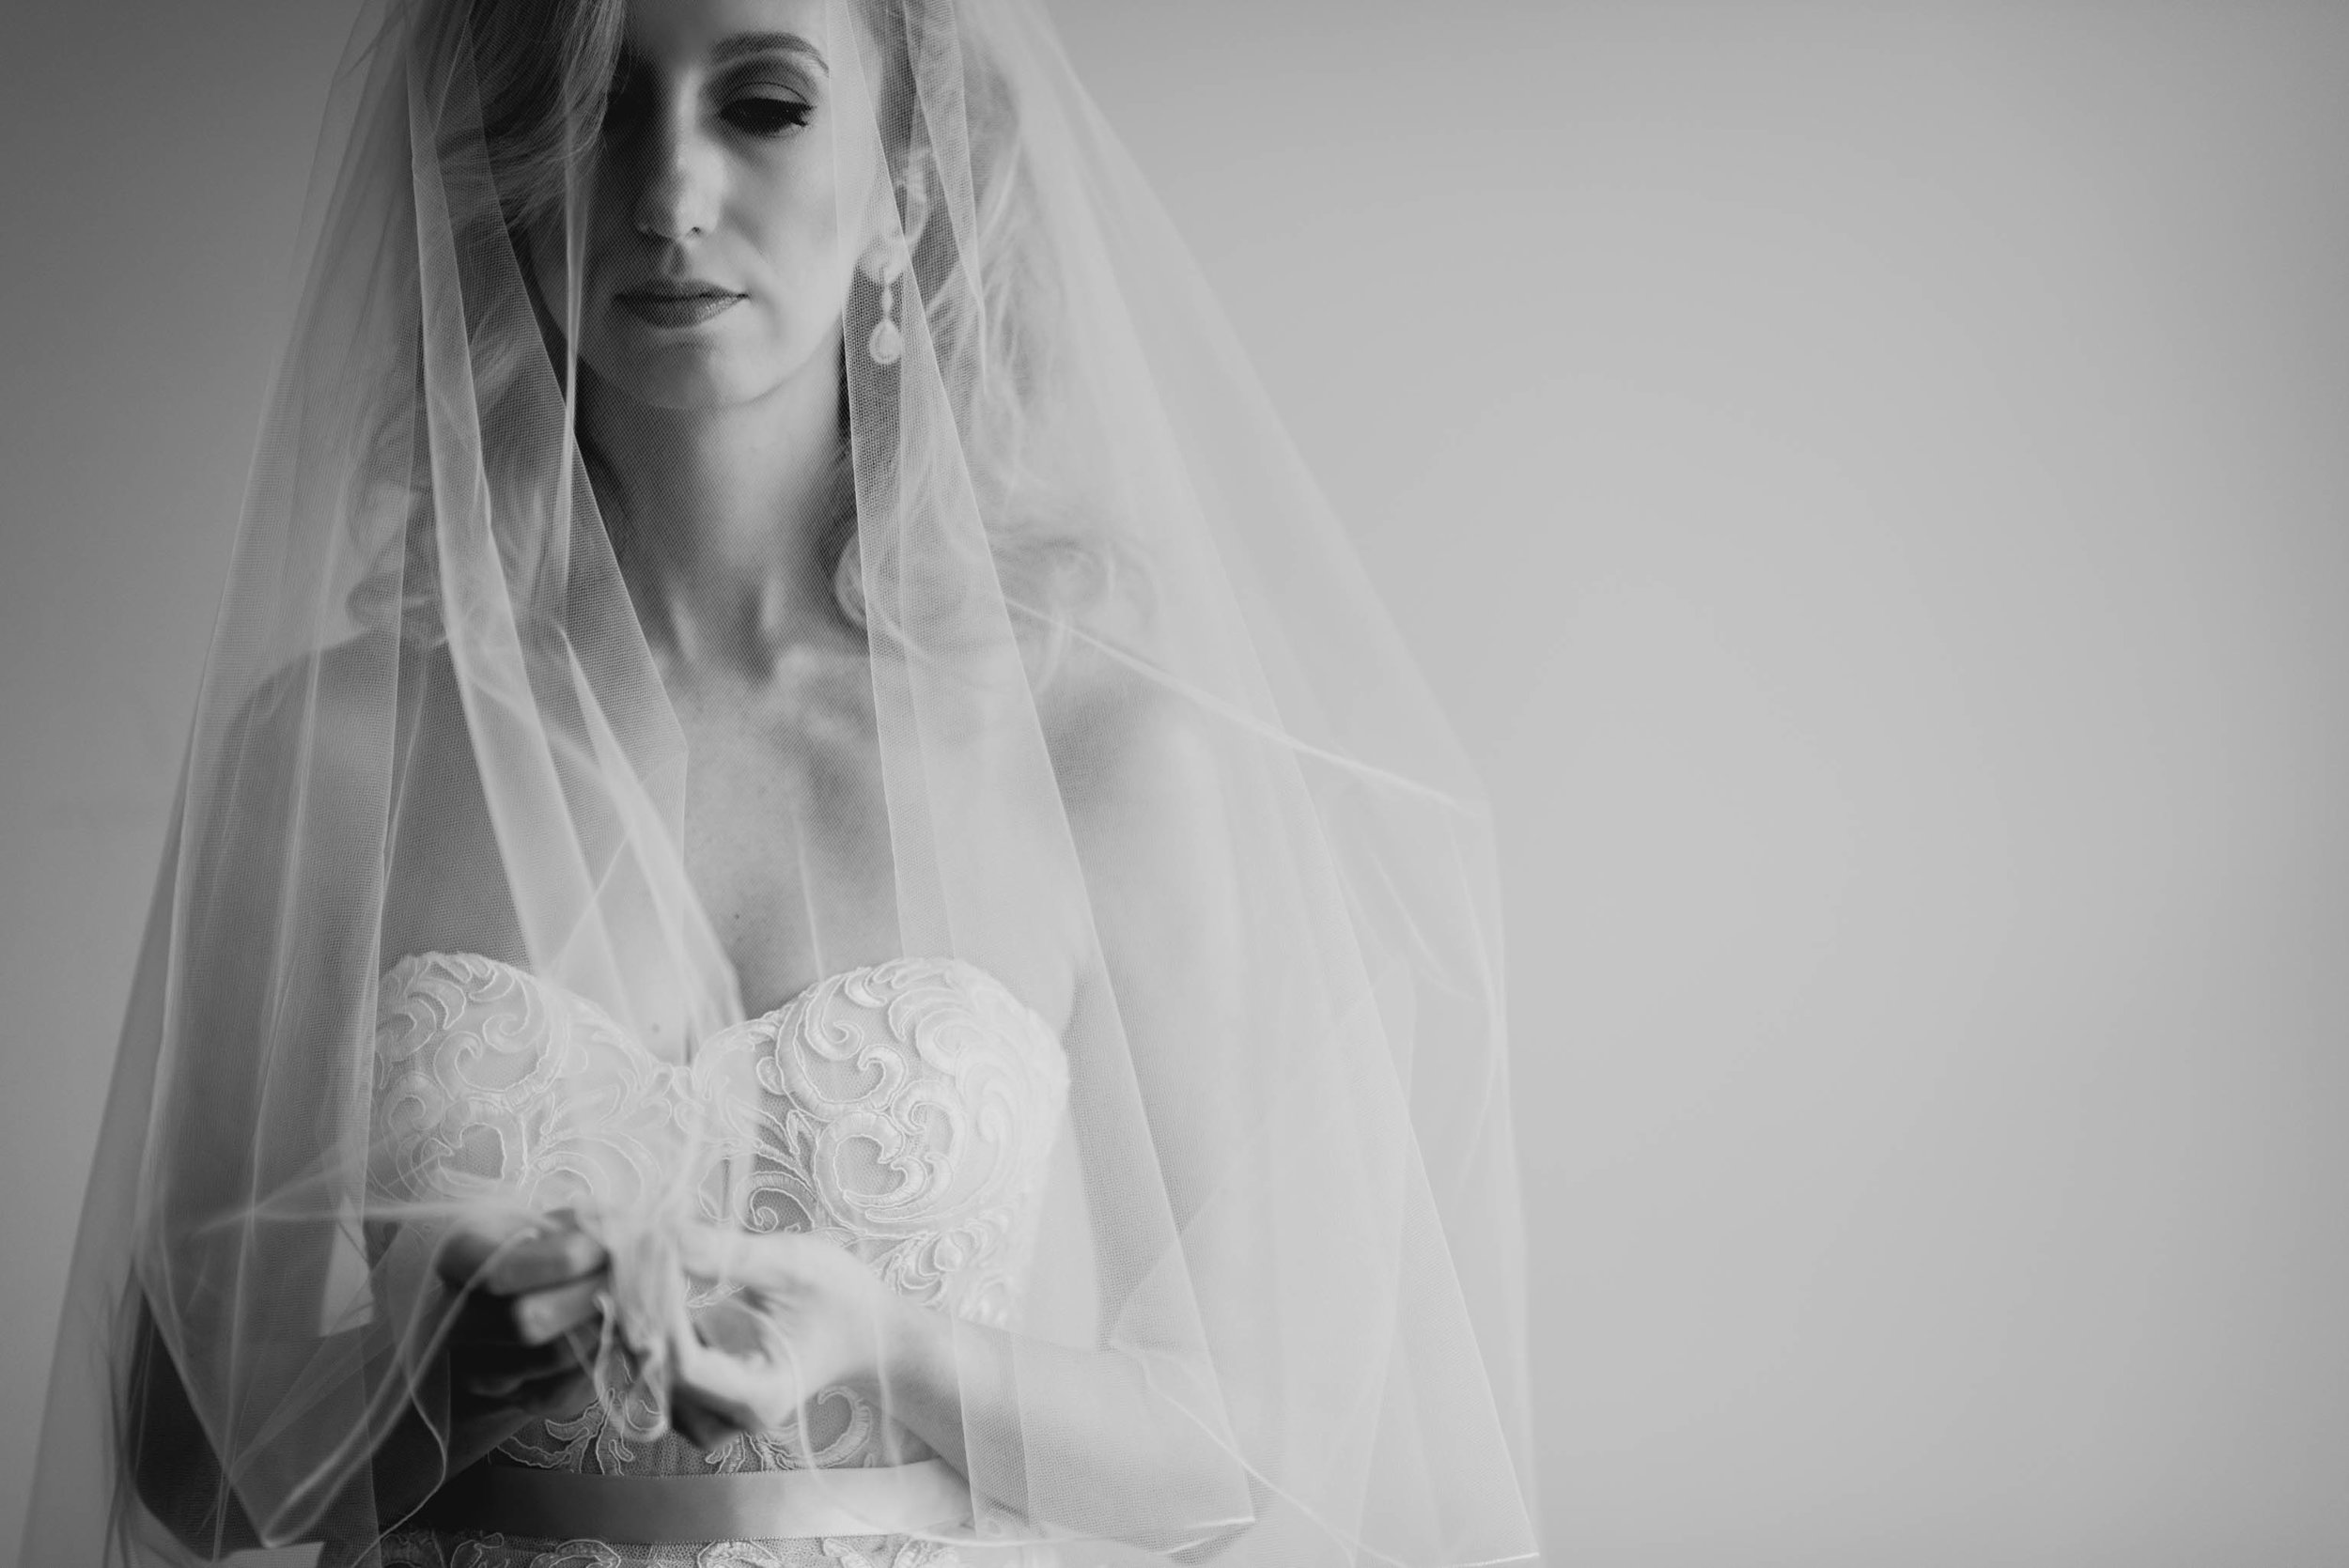 bride posing while holding her veil